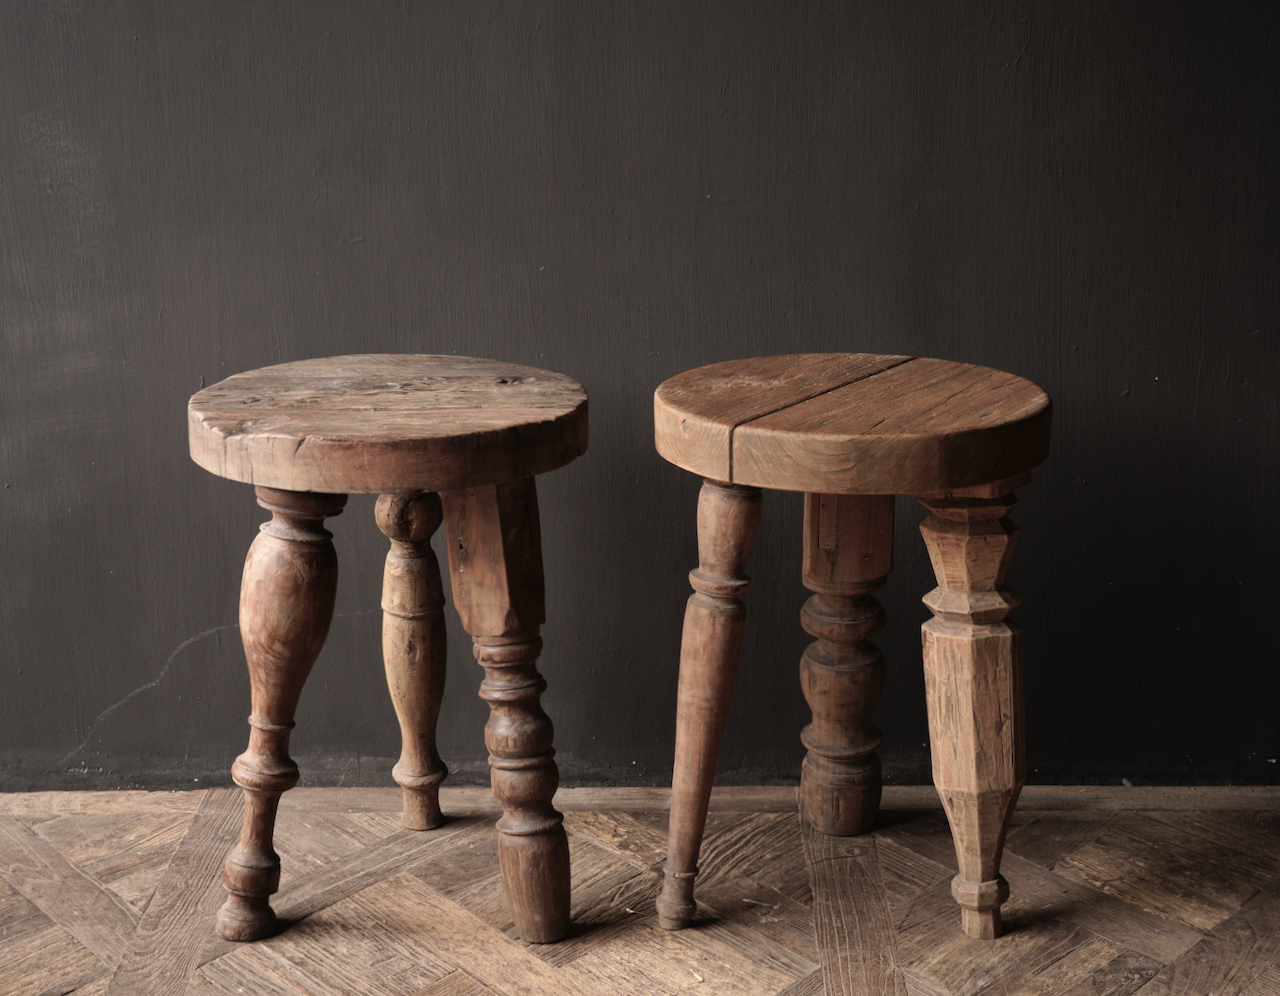 Unique round sturdy wooden side table with different legs-6